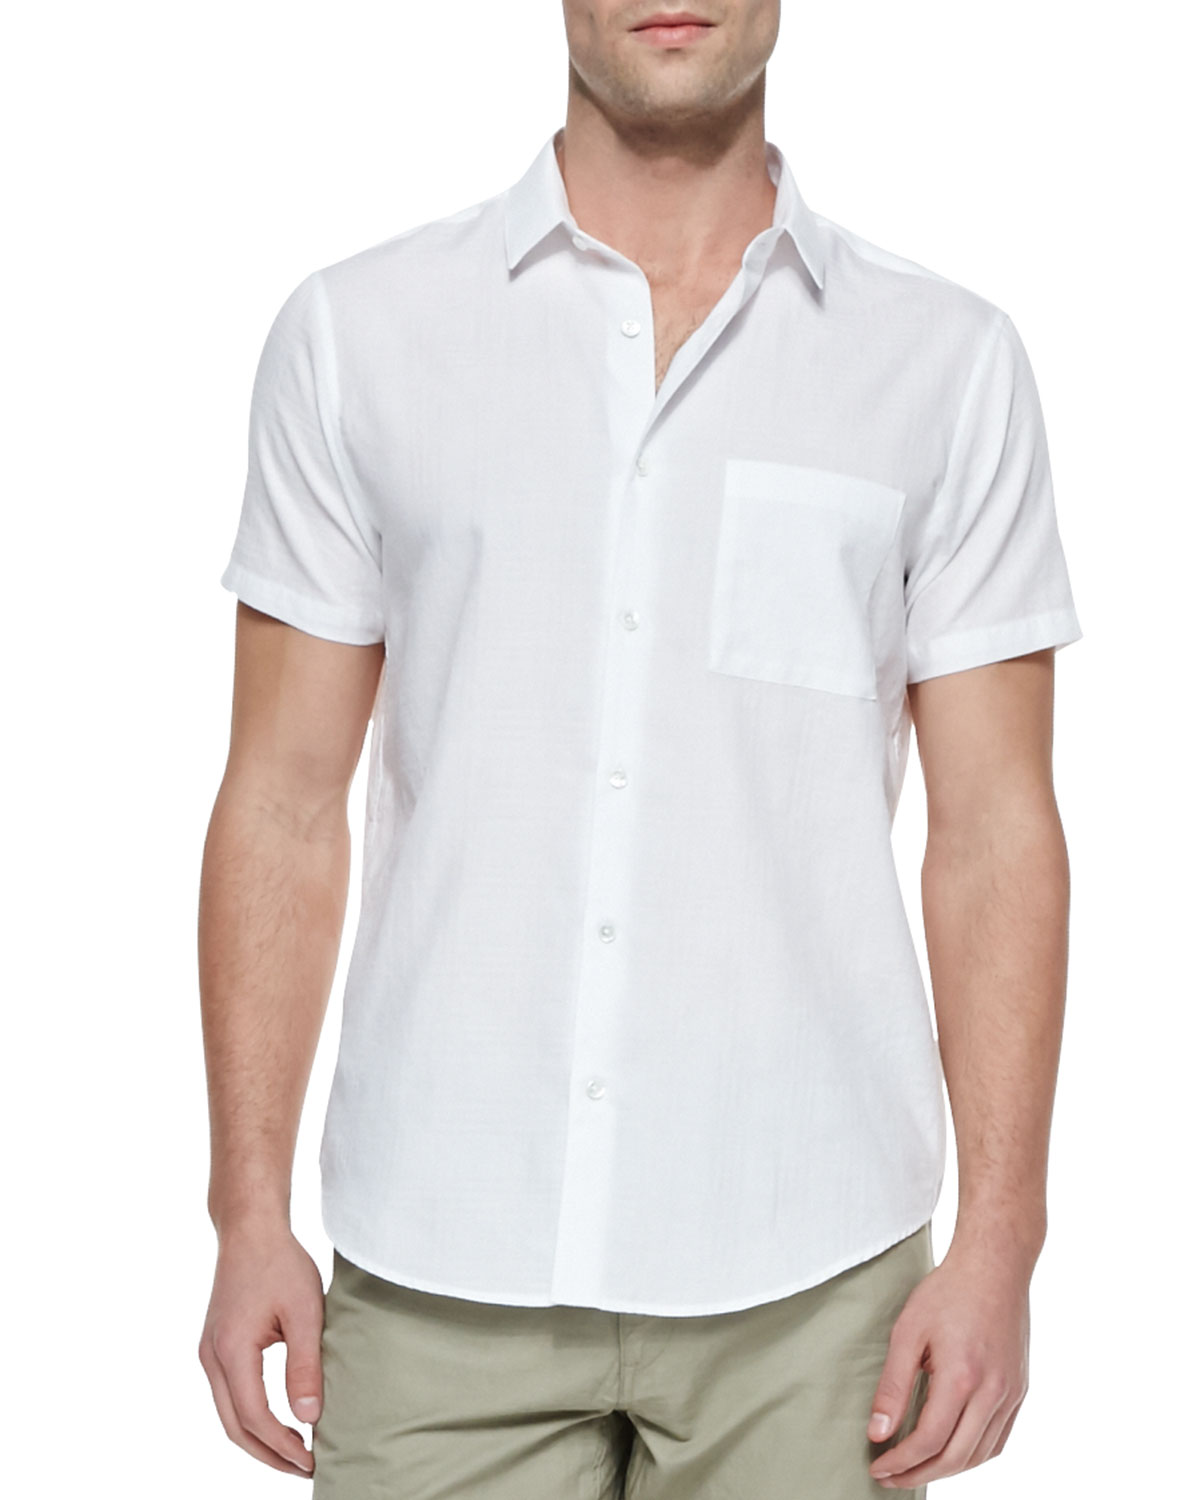 Mens Emer Short Sleeve 1 Pocket Shirt, White   Theory   White (SMALL)